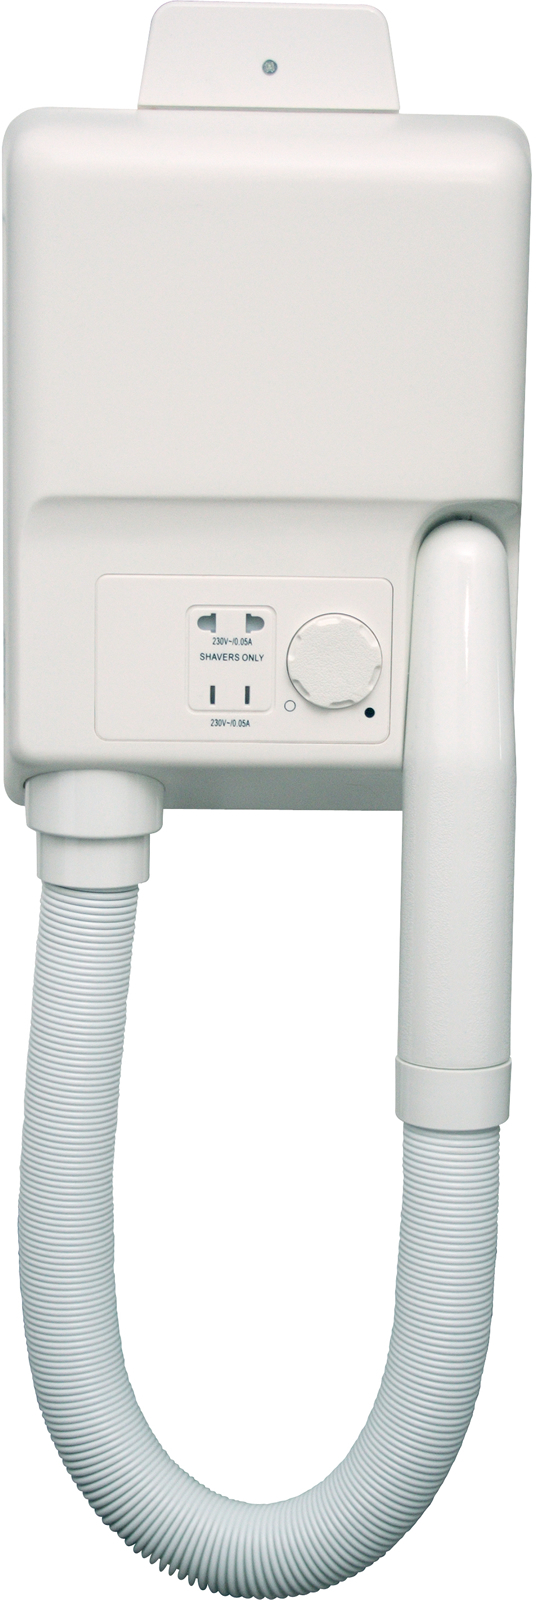 Bathroom body dryer